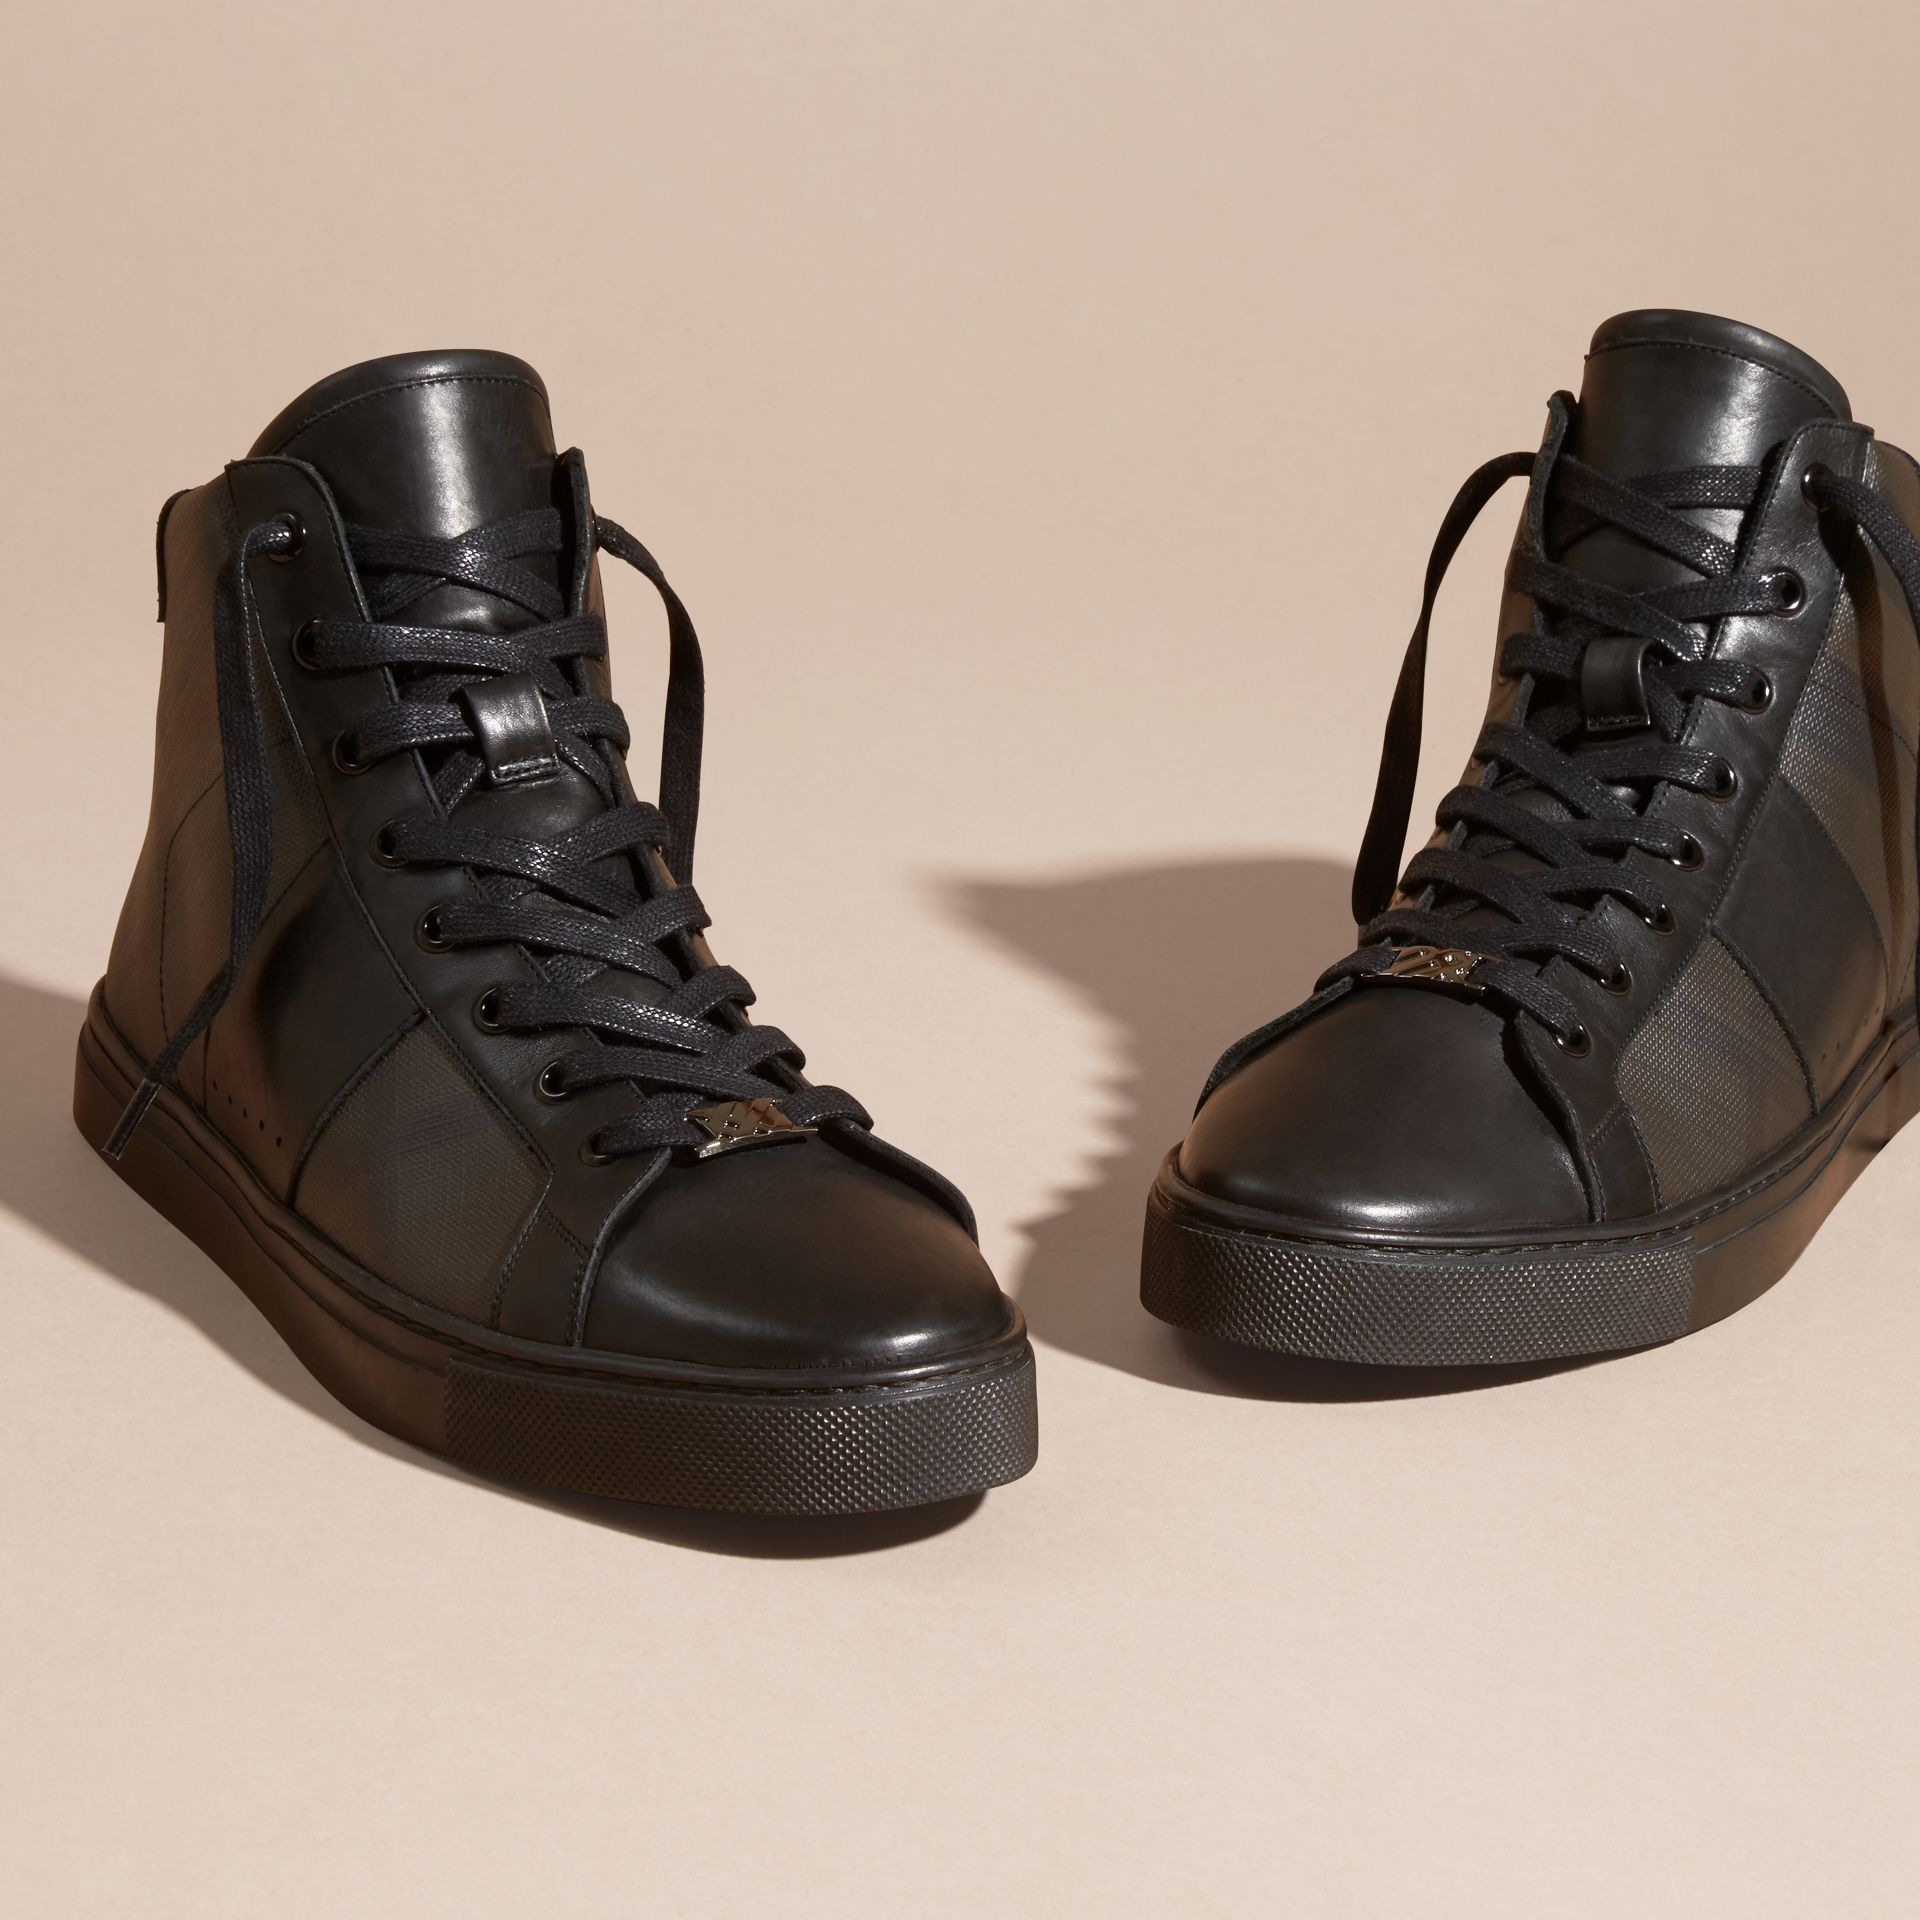 London Check and Leather High-Top Trainers in Smoked Chocolate - Men | Burberry - gallery image 3